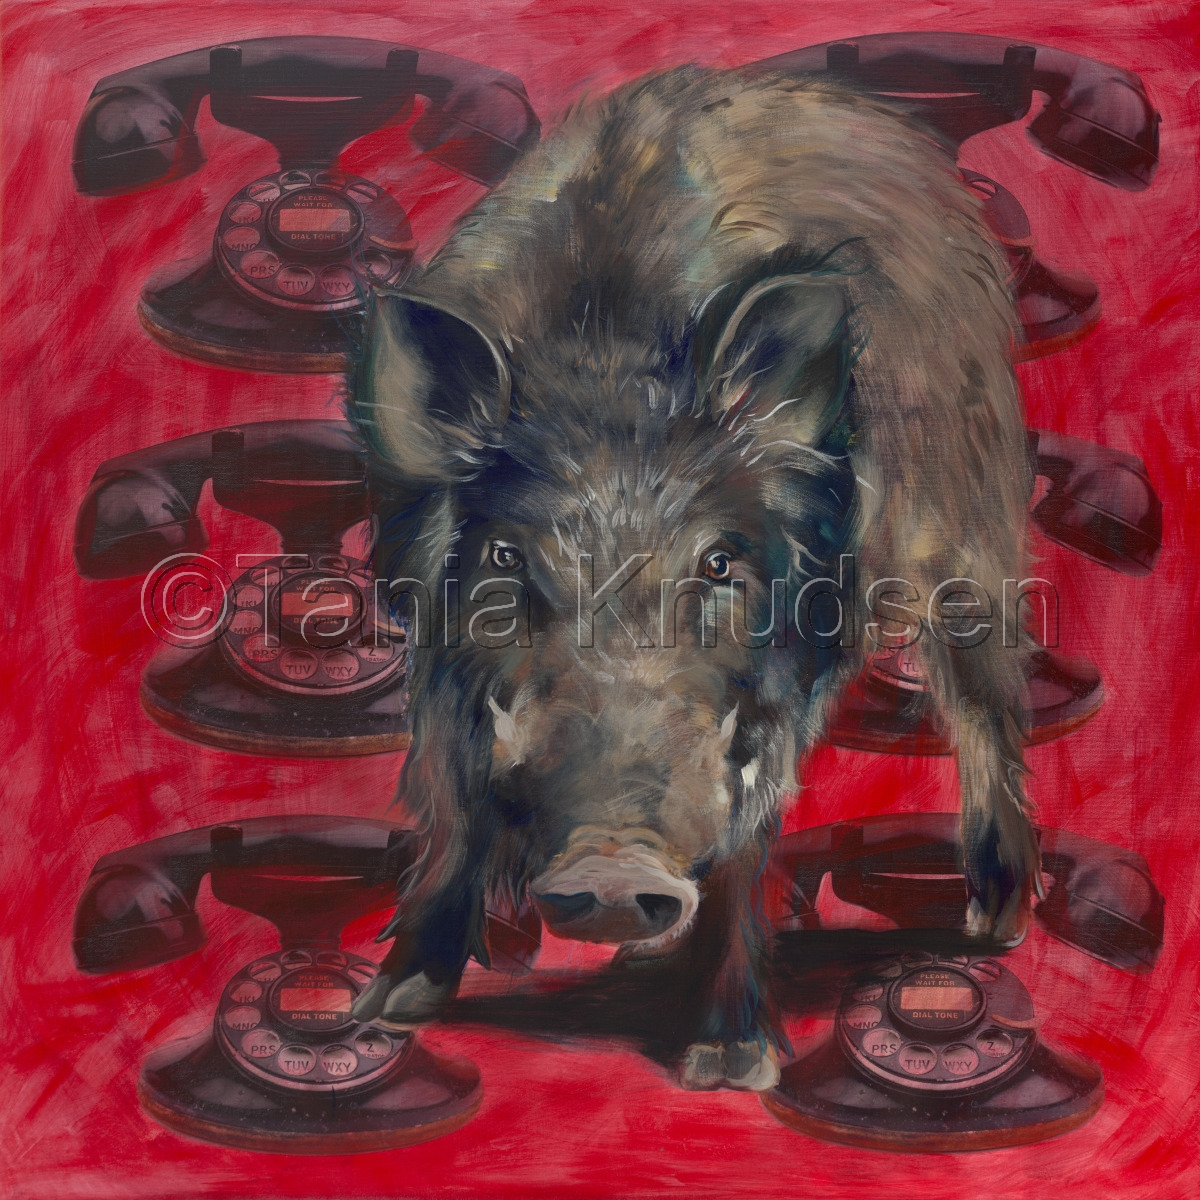 Arkansas Razorback painting (large view)